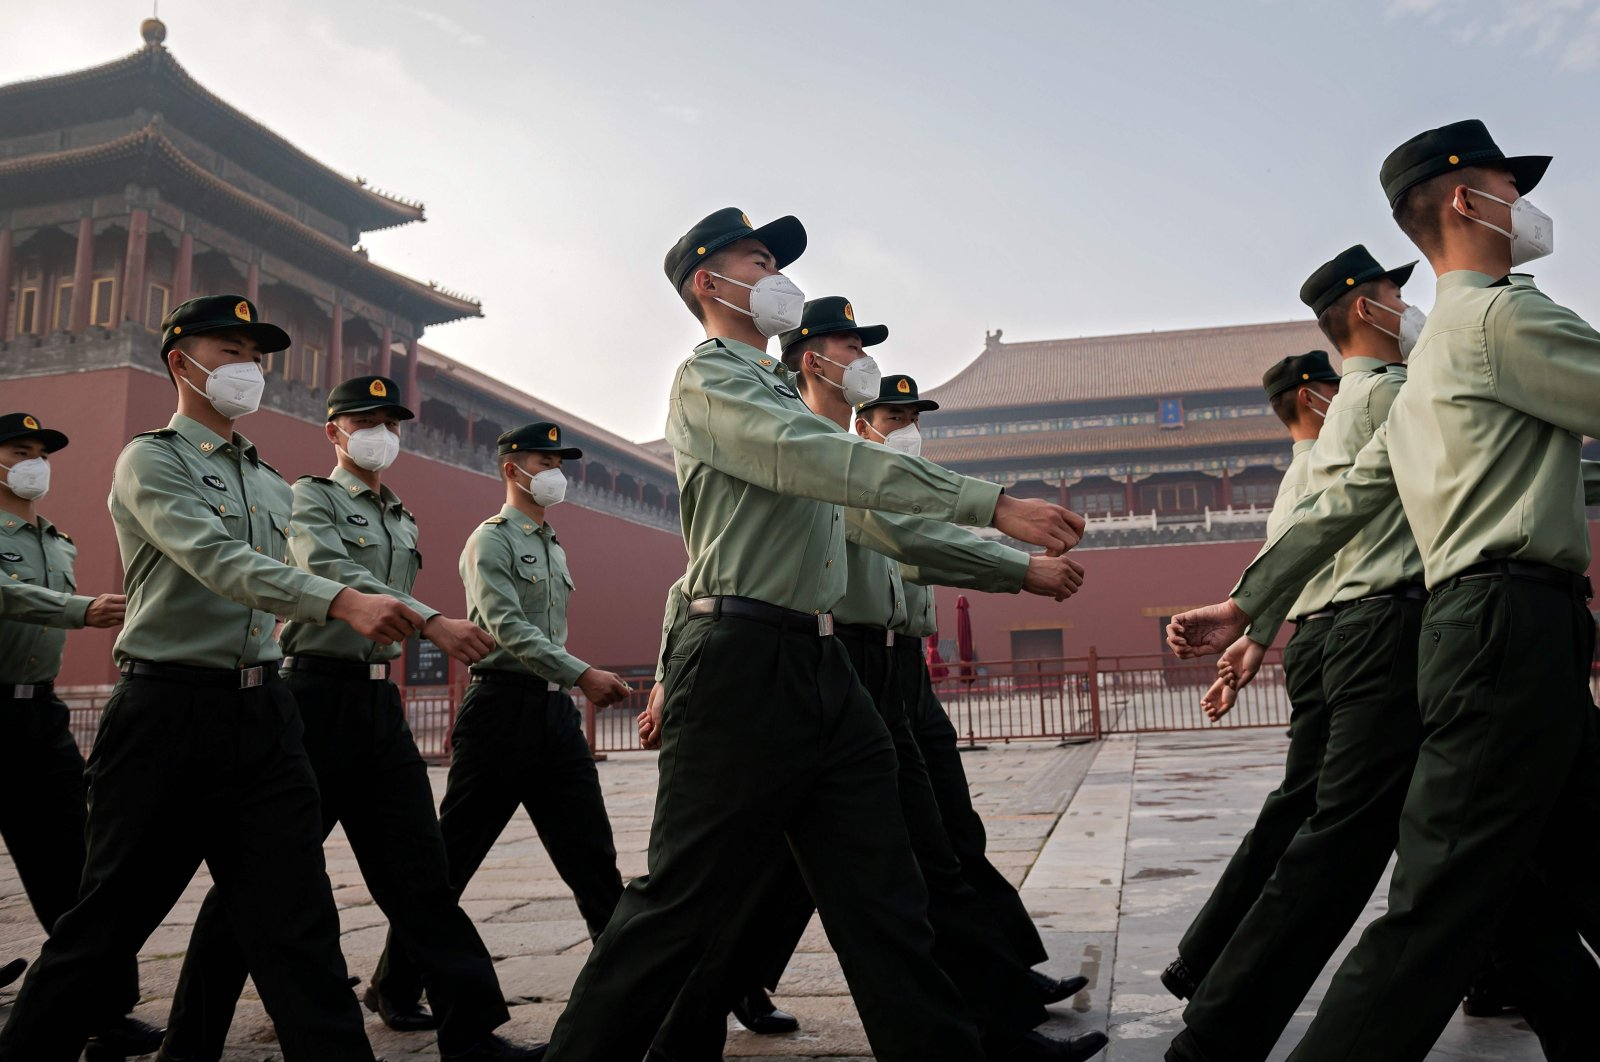 People's Liberation Army (PLA) soldiers march next to the entrance to the Forbidden City during the opening ceremony of the Chinese People's Political Consultative Conference (CPPCC), Beijing, May 21, 2020. (AFP Photo)